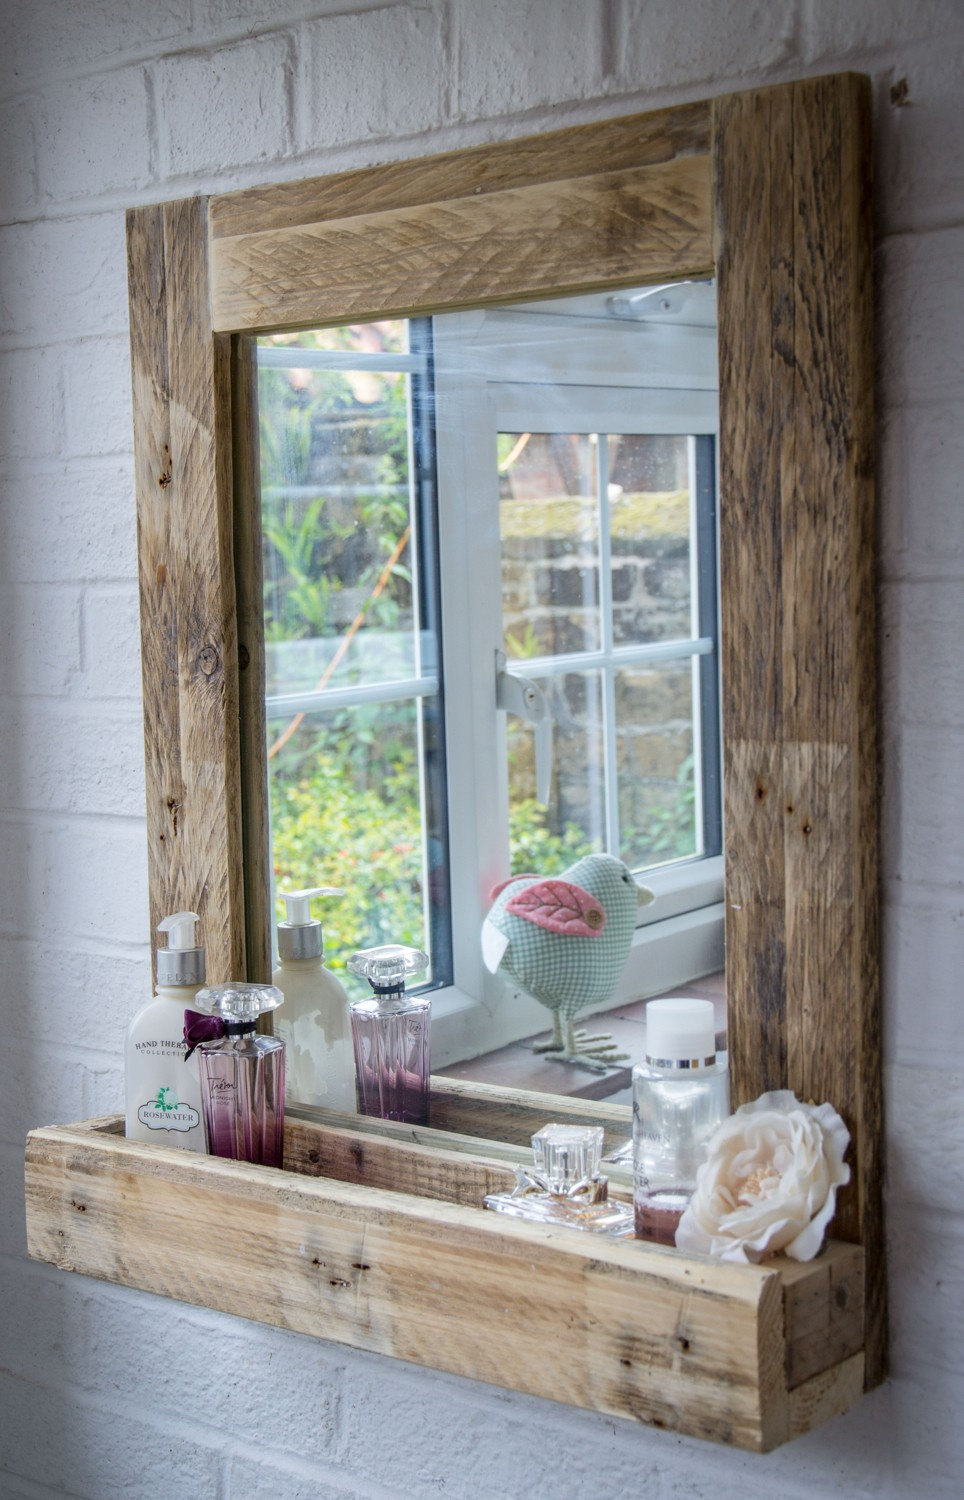 Best small space organization hacks 31 gorgeous rustic for Bathroom ideas rustic